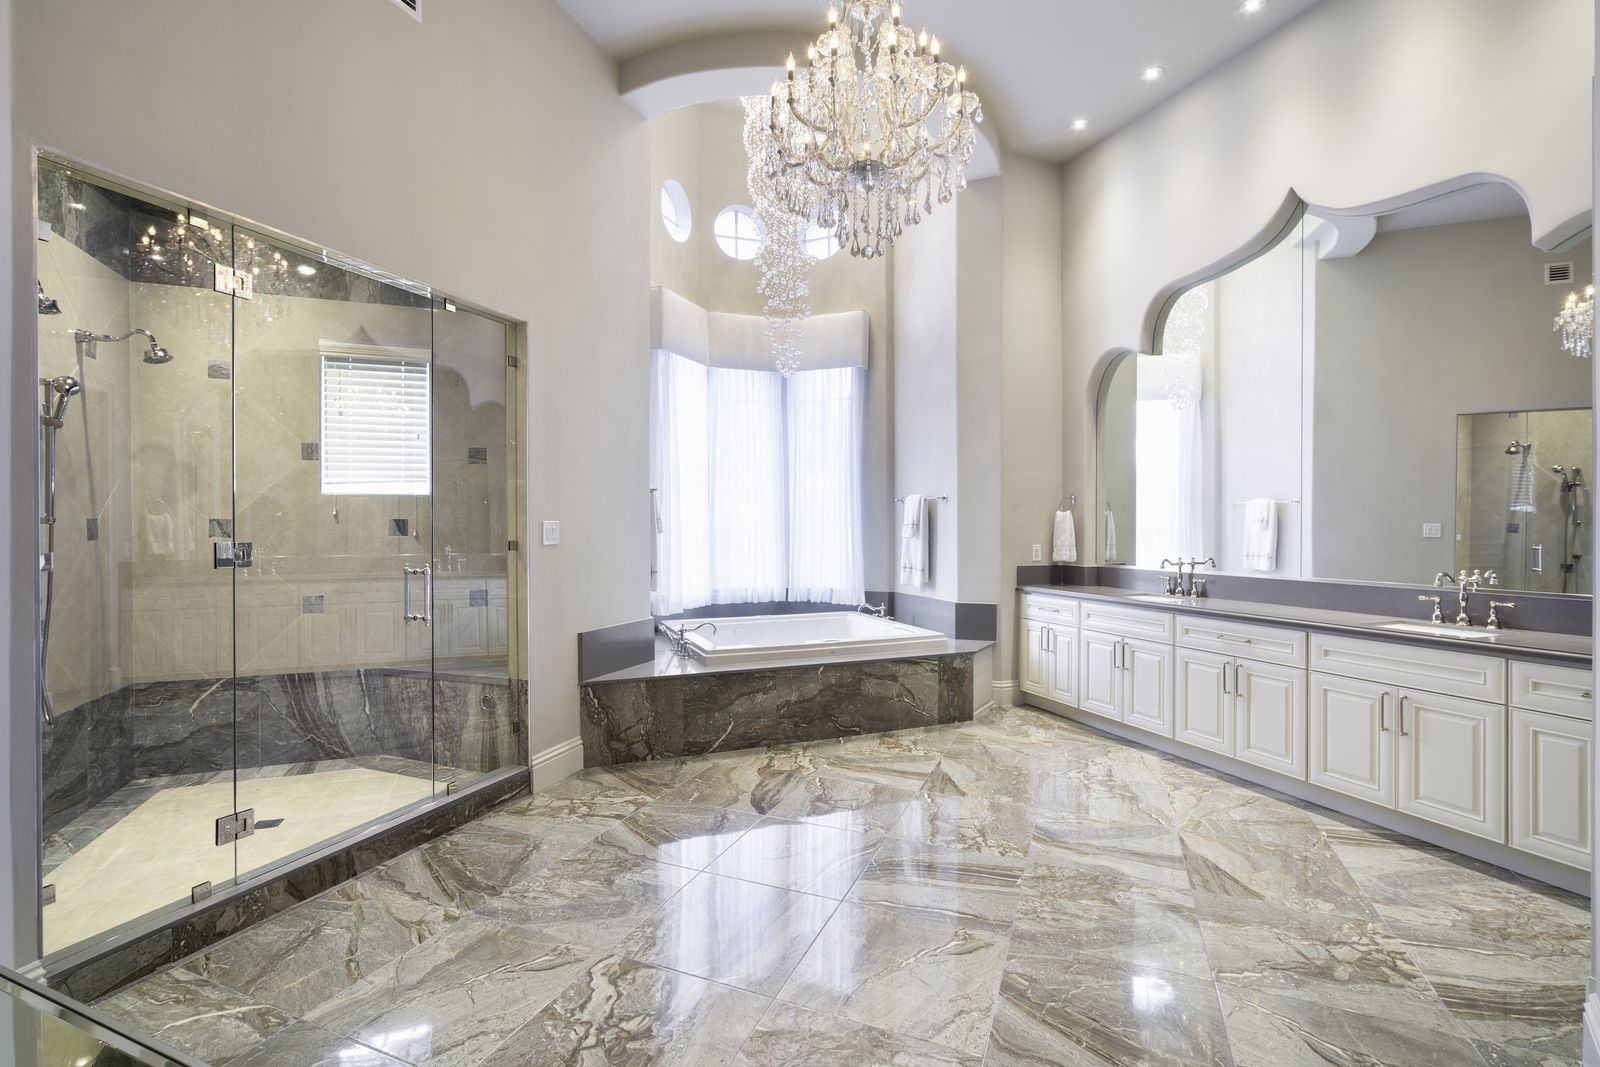 Badezimmer Set Sale Dj Khaled S 7 99 Million Mansion Has The Most Inspiring Shoe